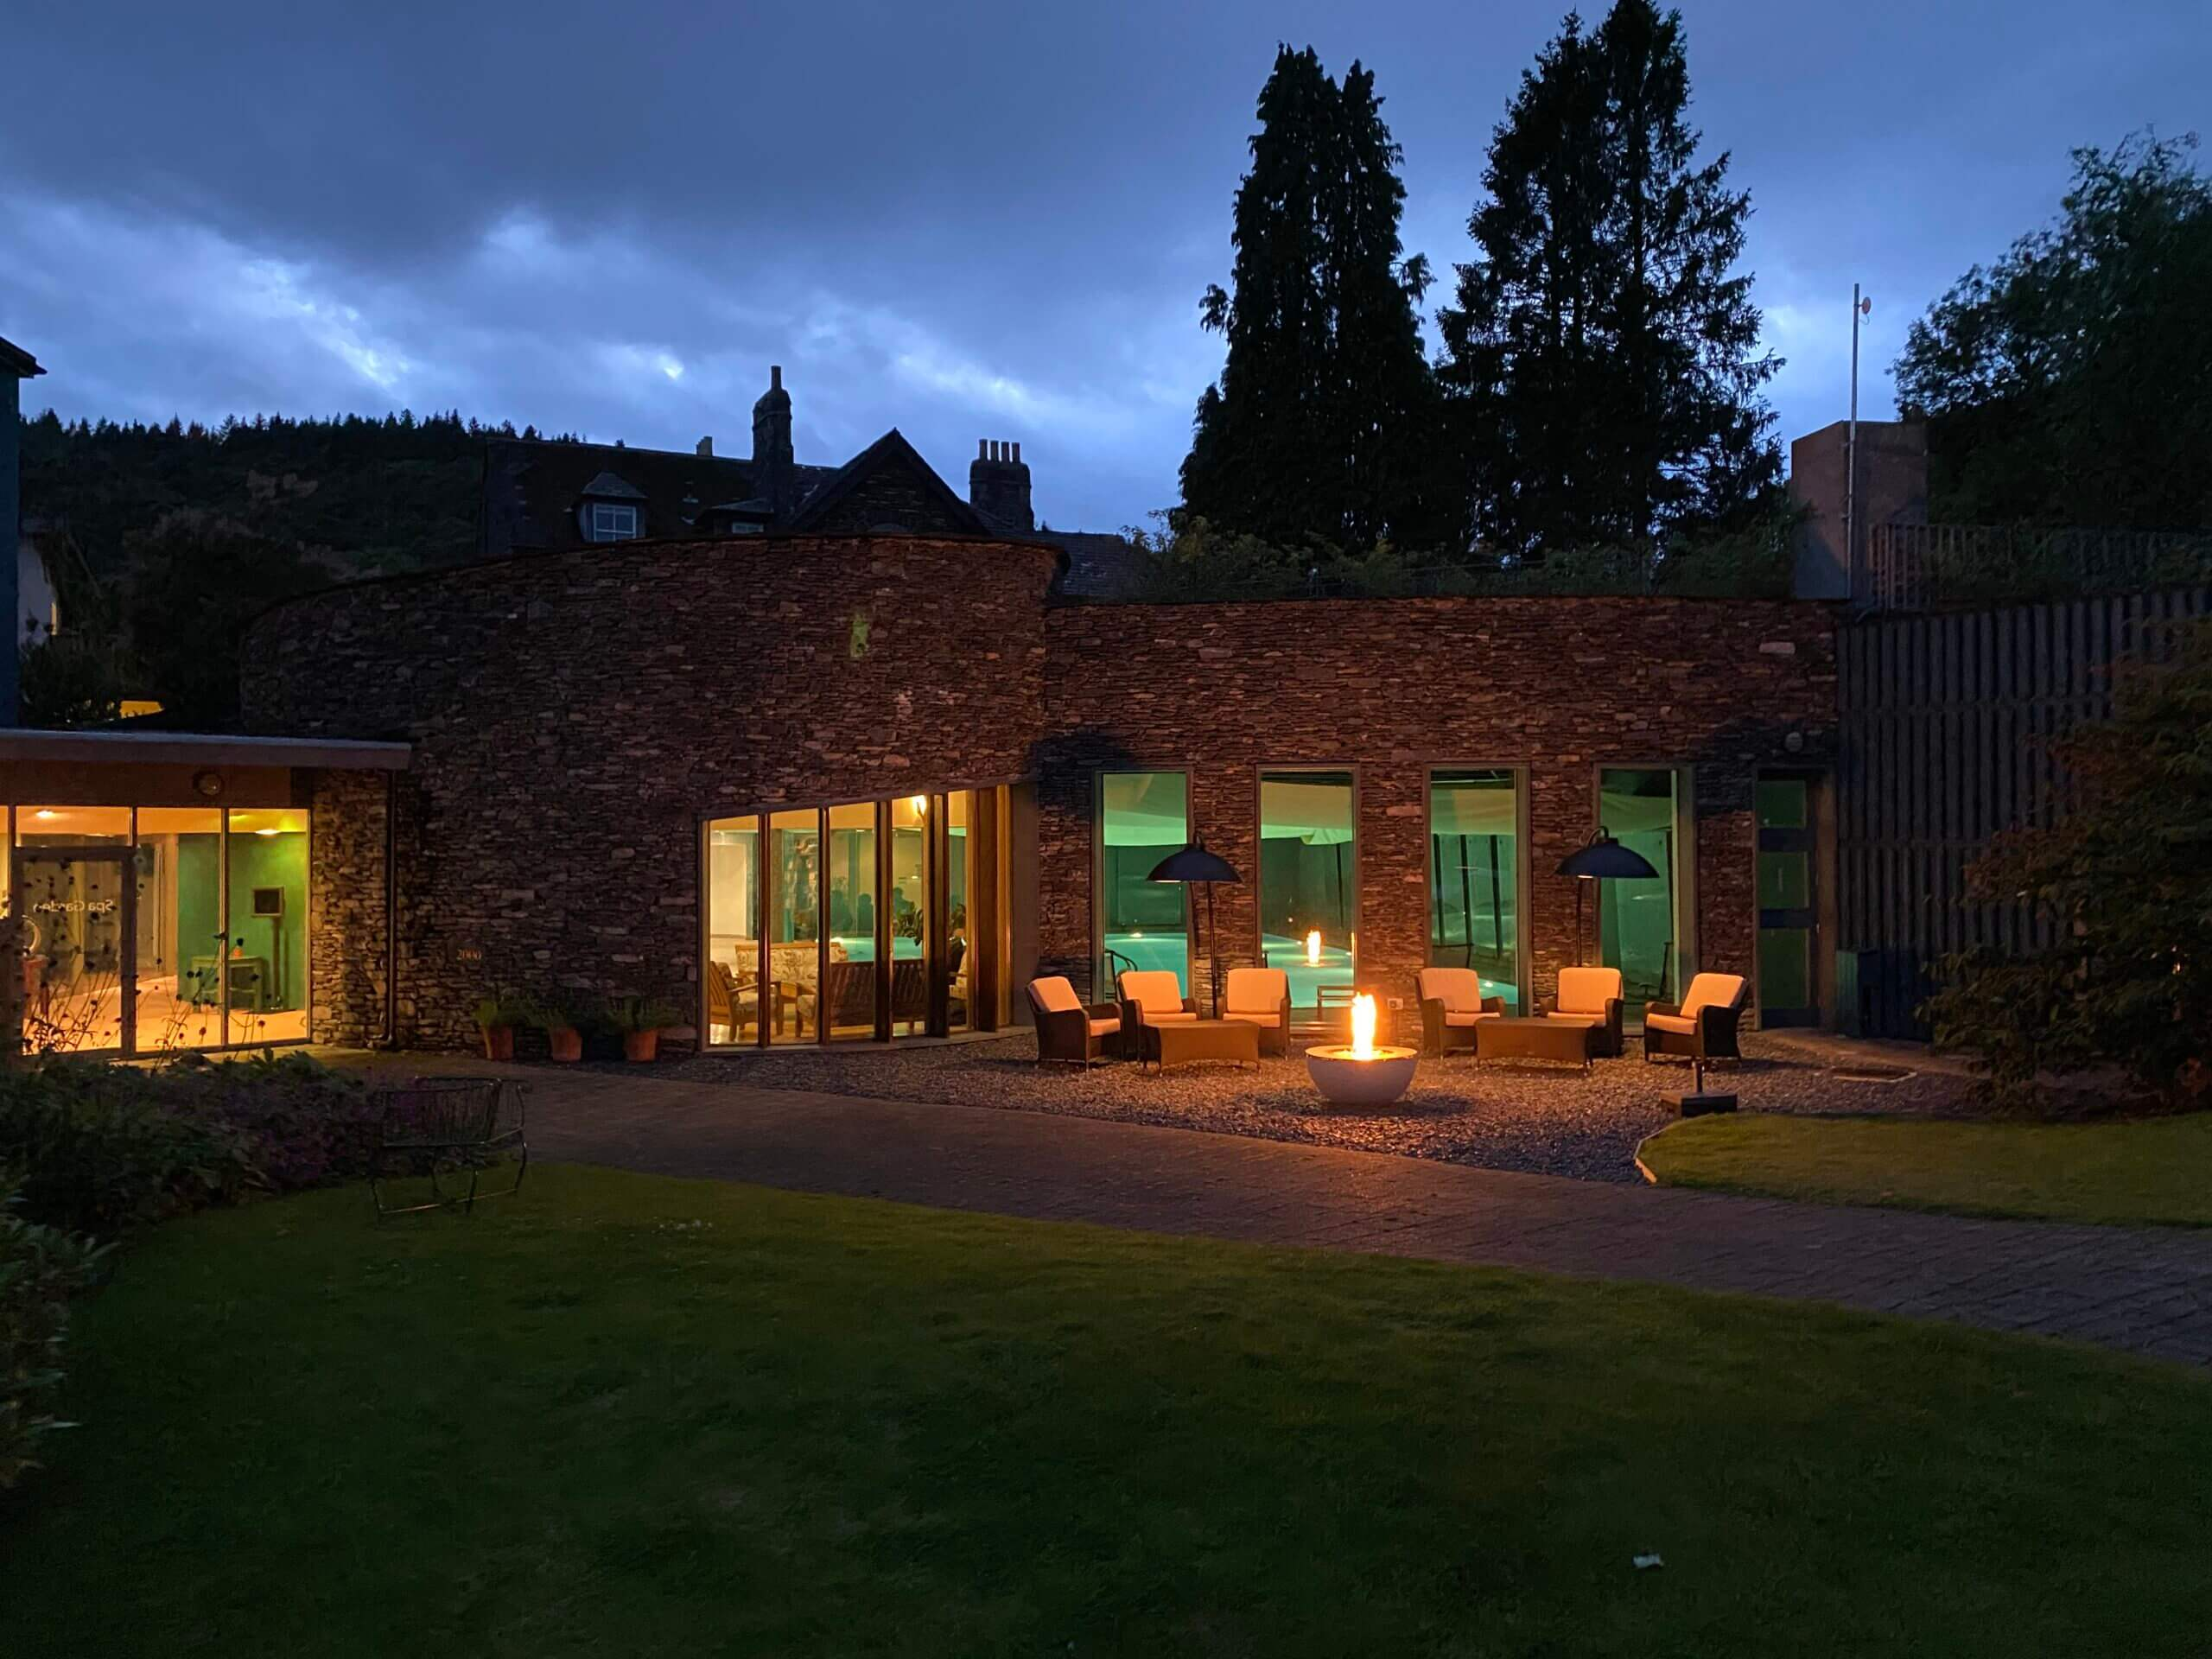 Spa Garden by night